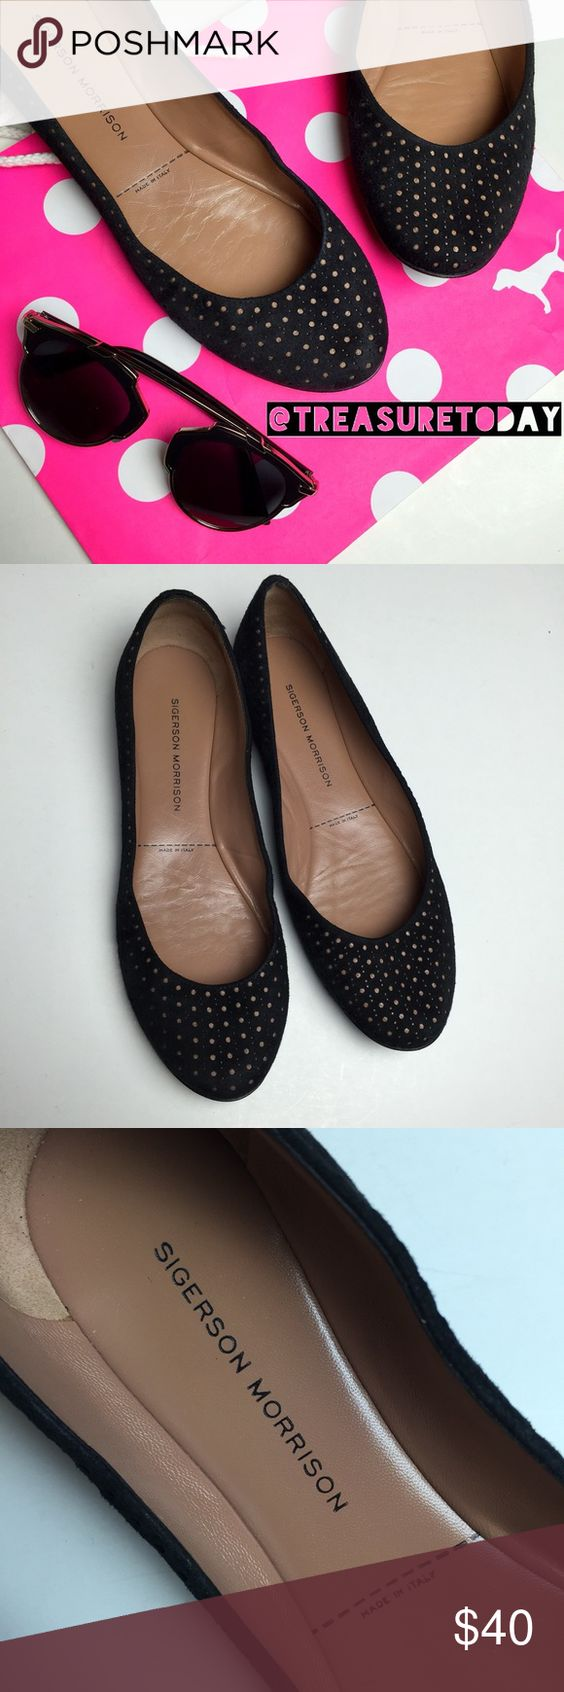 Sigerson Morrison Perforated Suede Leather Flats Gently used, great condition and lots of life left. Upper suede, leather insole and leather bottom sole - high quality & durable. Feel free to ask any question, I'm here to help! 🎉Offers welcome 🎉 Bundle 2 or more items and get %10 off instantly💕 all pictures are taken by me. Sigerson Morrison Shoes Flats & Loafers